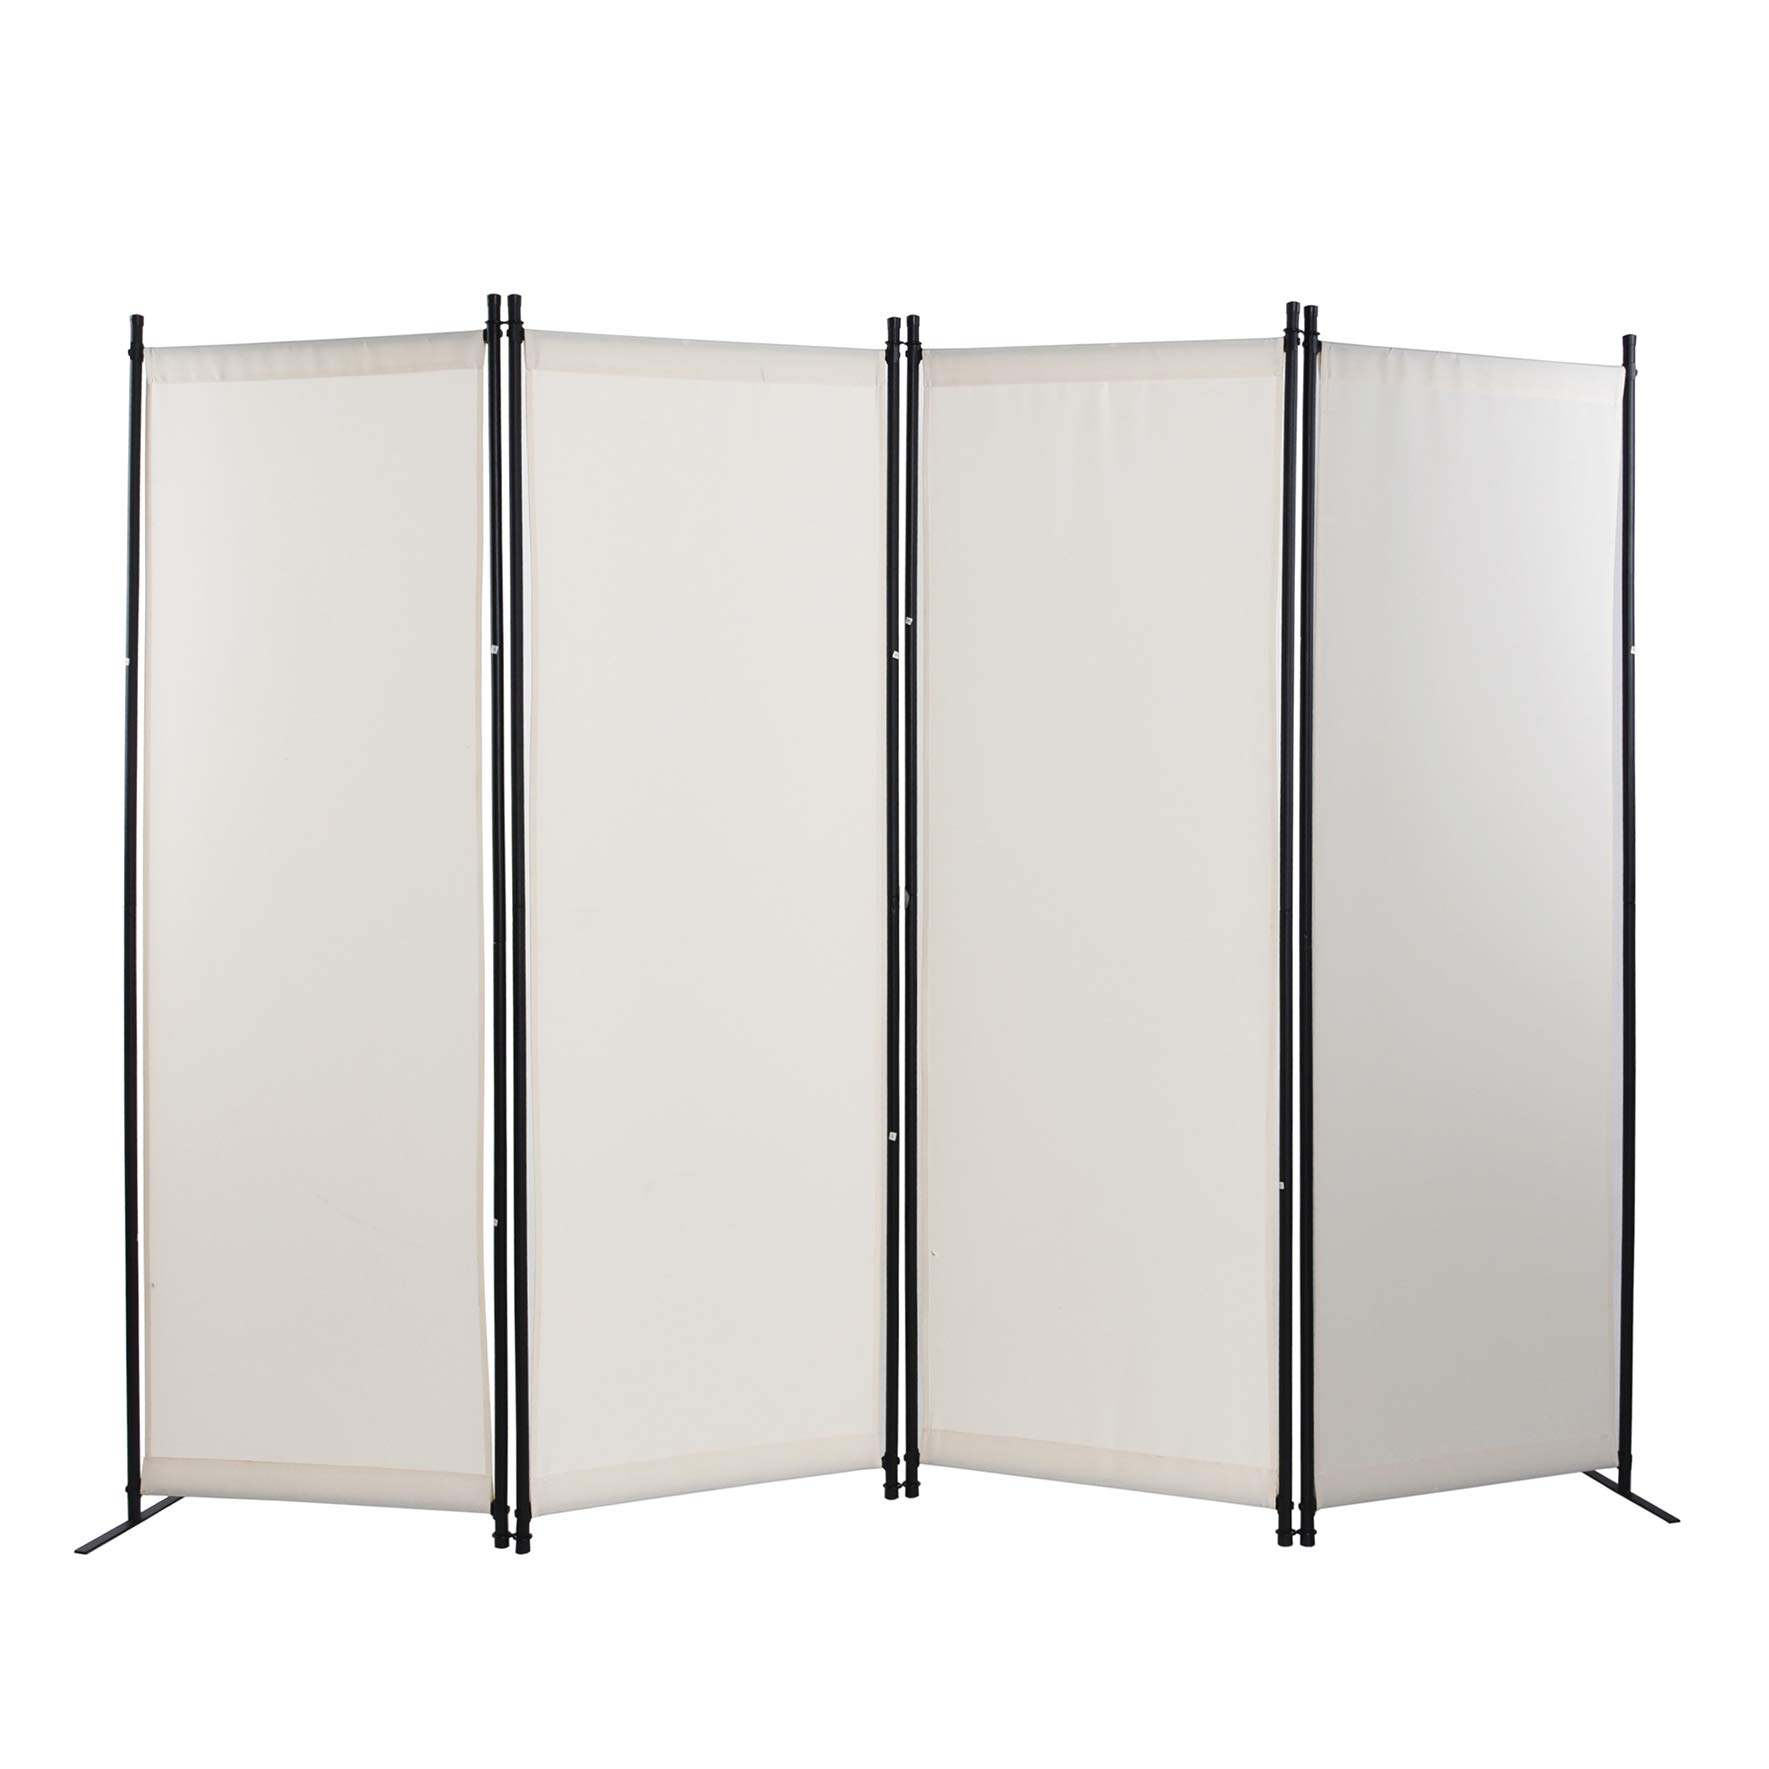 Goodgojo 4 Panel Room Divider Screens Home Office Steel Frame Fabric Surface (White) by Goodgojo